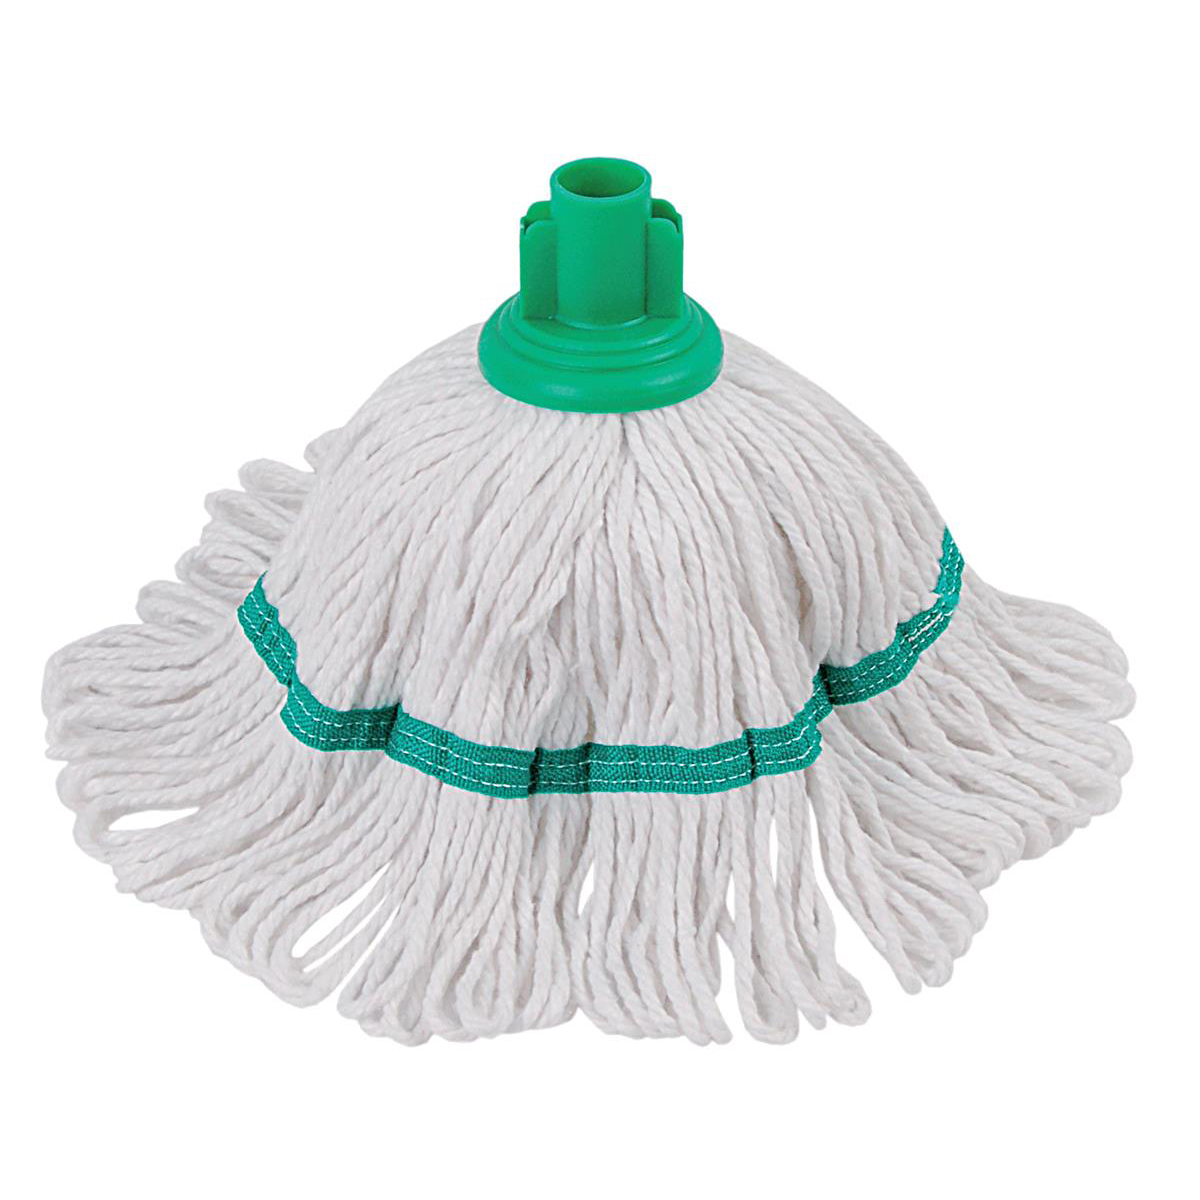 Mop heads Robert Scott & Sons Hygiemix T1 Socket Cotton & Synthetic Colour-coded Mop 200g Green Ref MHH200G